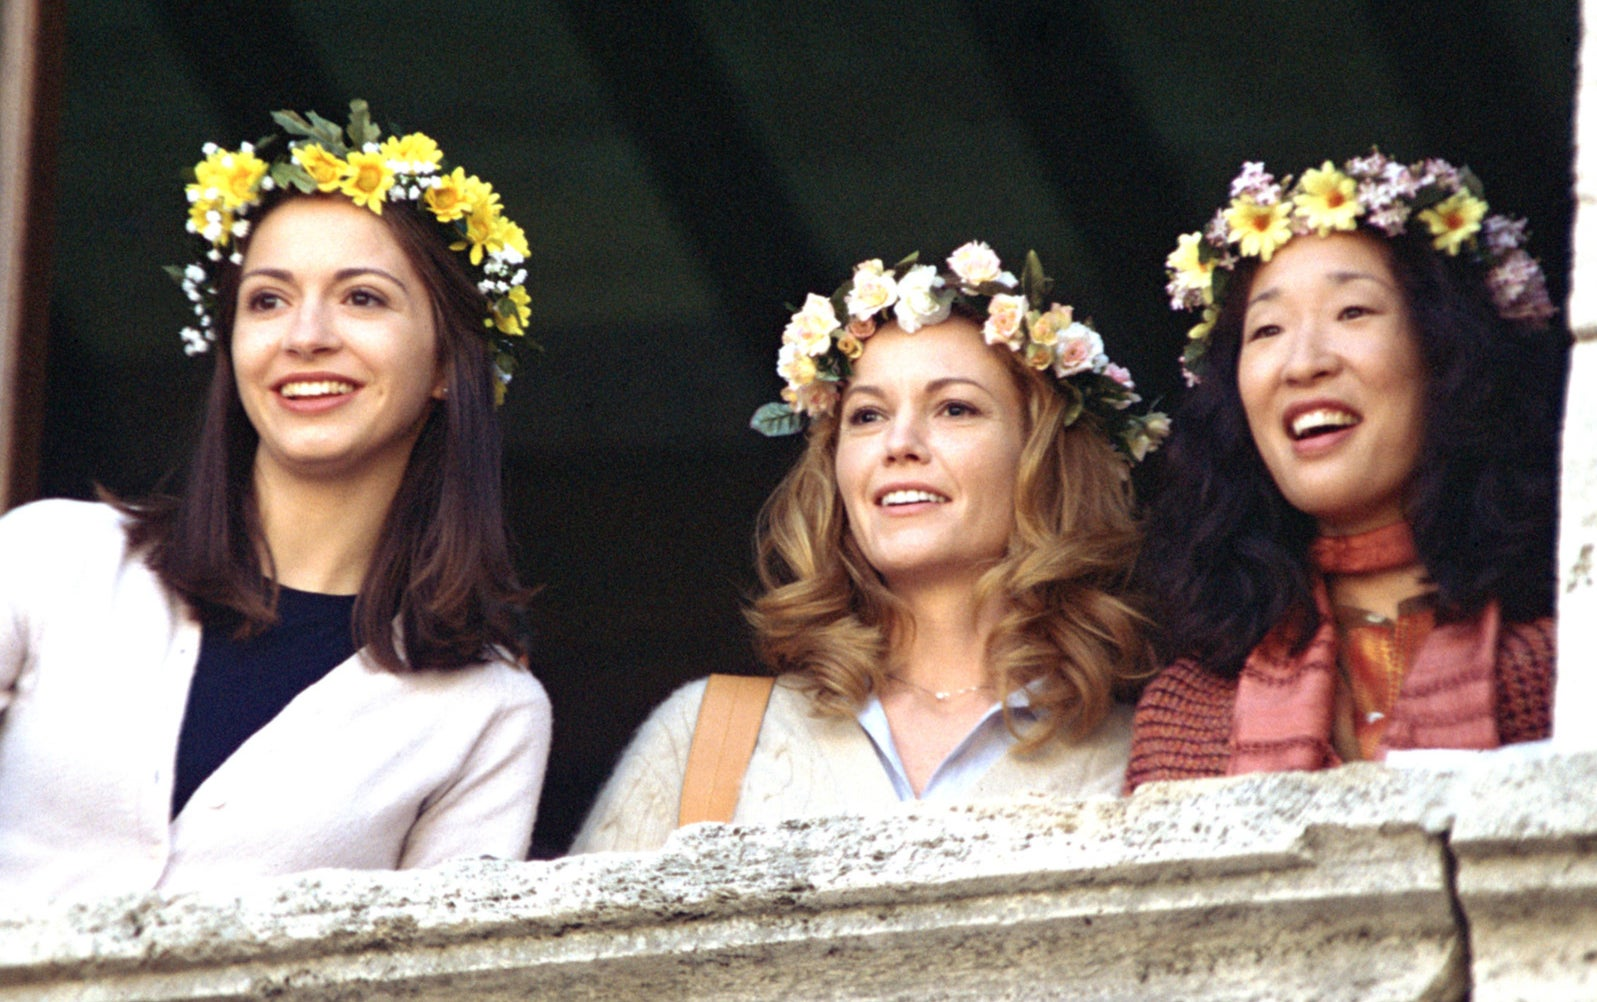 Oh with Diane Lane and Giulia Steigerwalt in Under the Tuscan Sun, 2003.